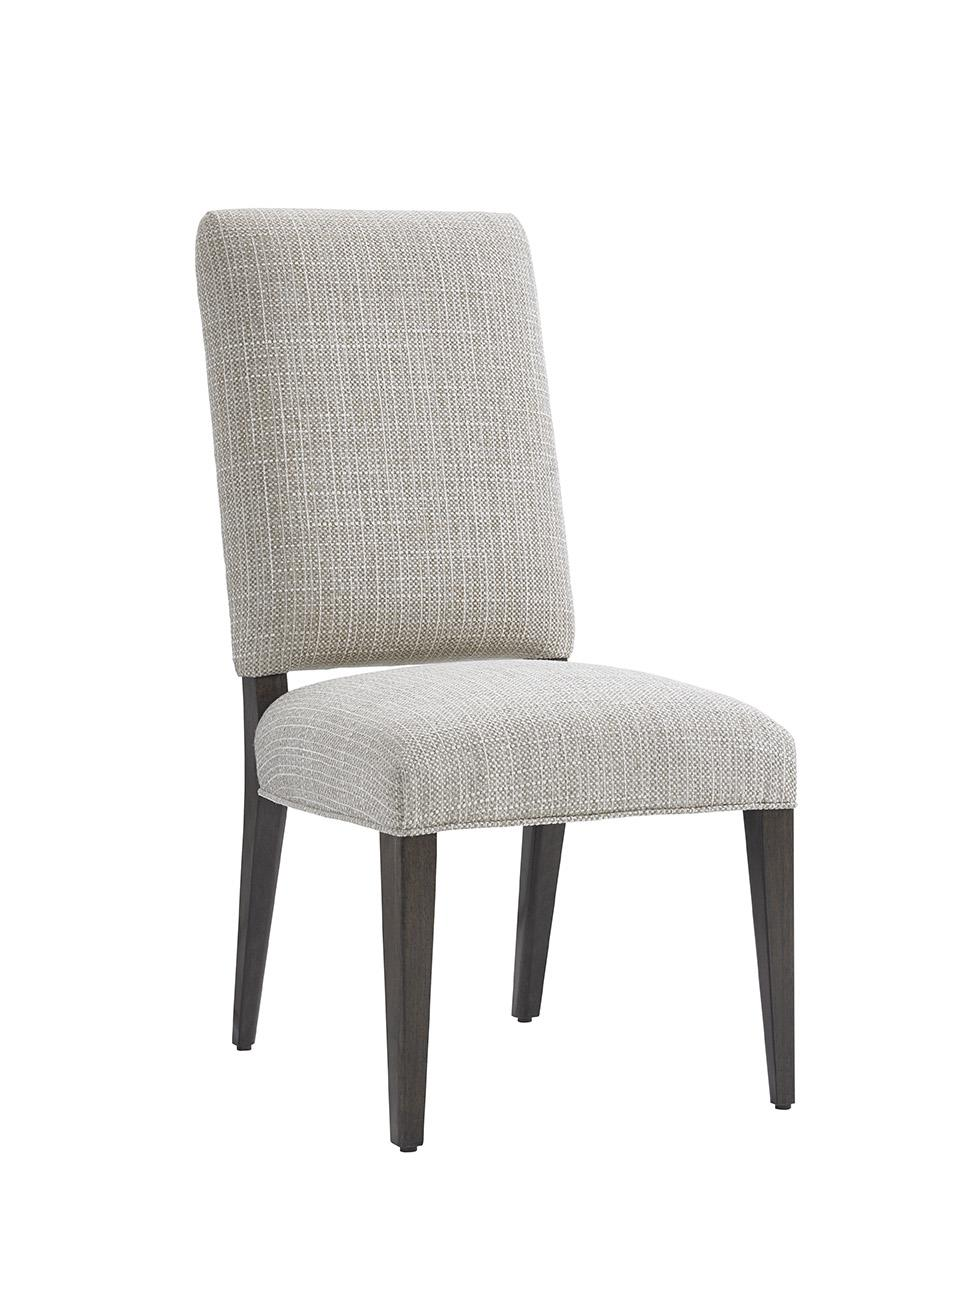 LAUREL CANYON Sierra Upholstered Side Chair (Married Fabr) by Lexington at Johnny Janosik